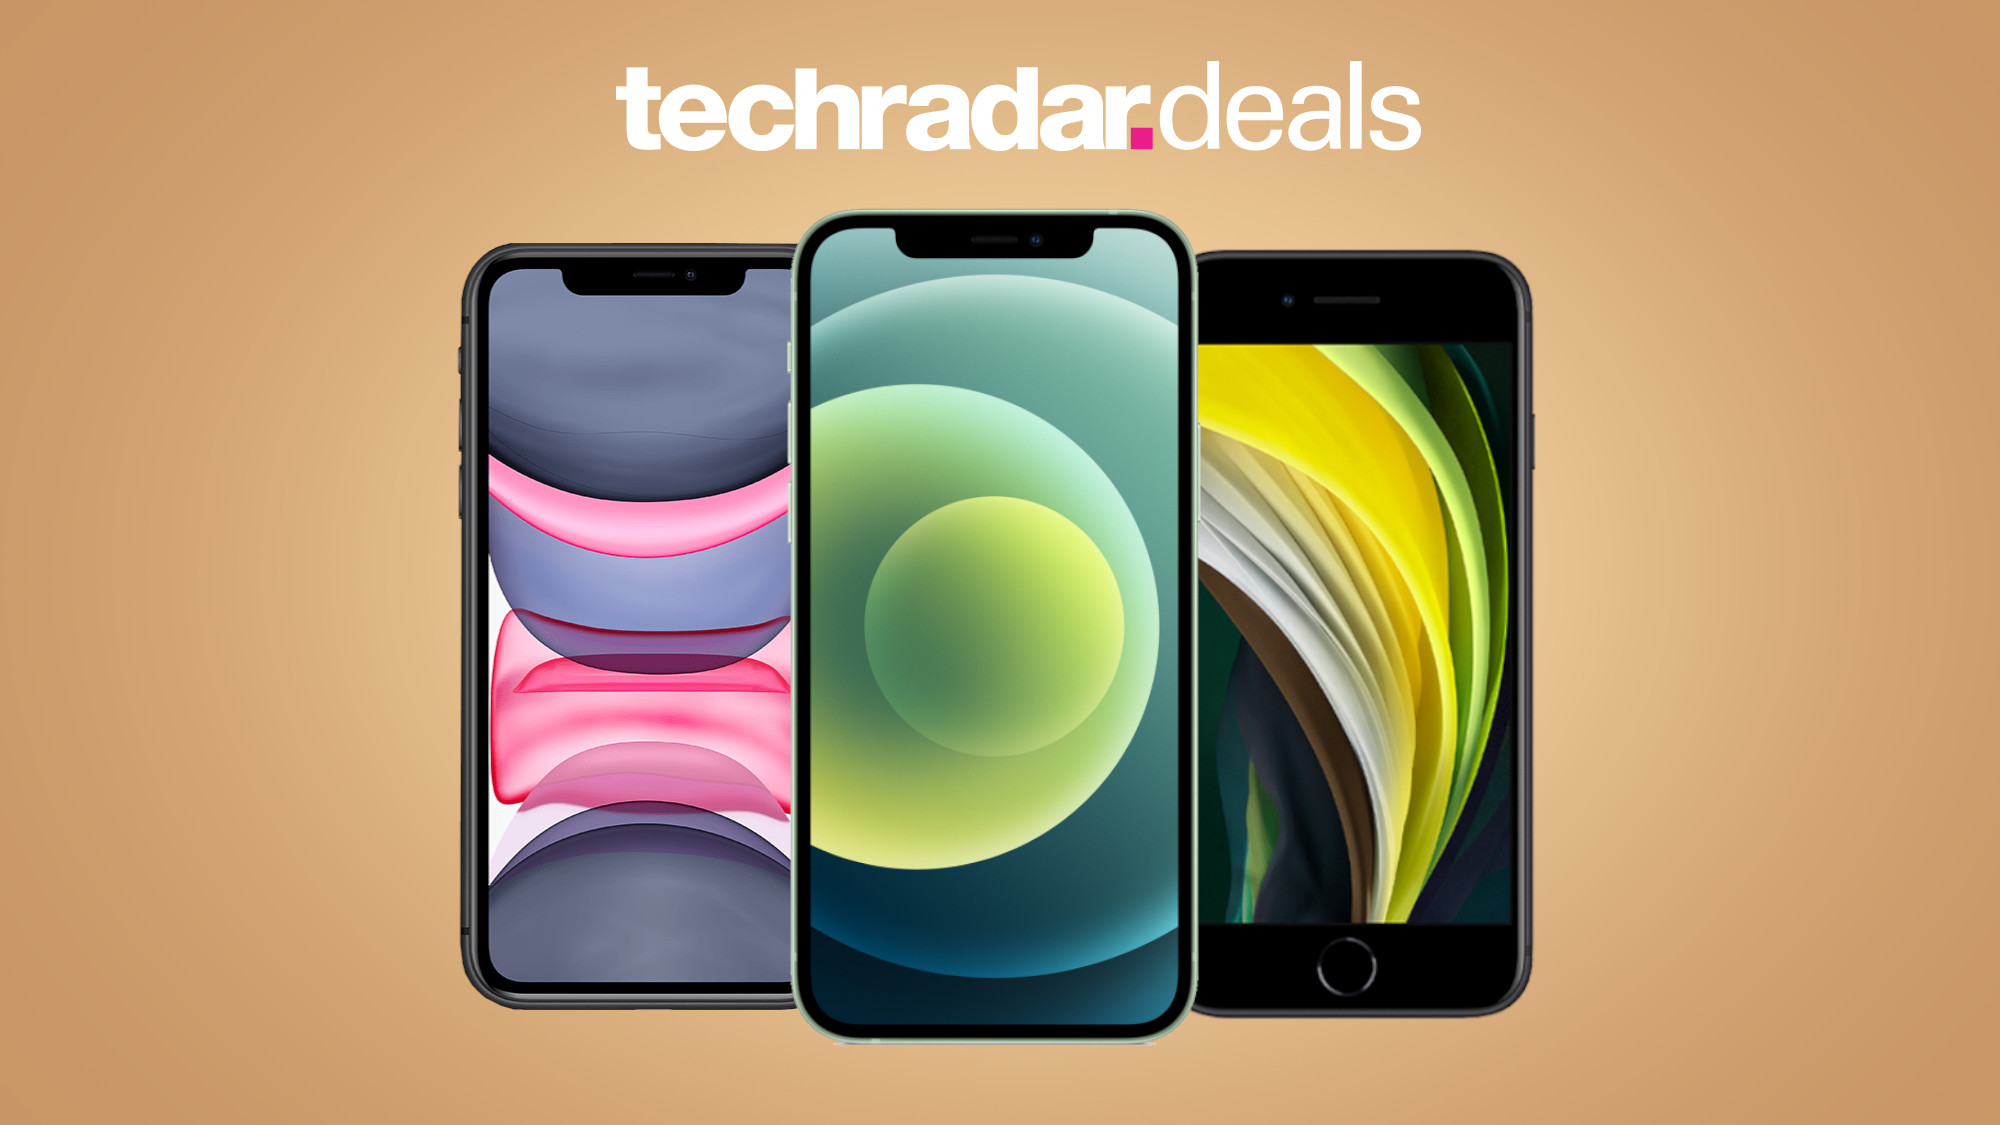 The Best Iphone Deals And Prices For February 2021 Techradar